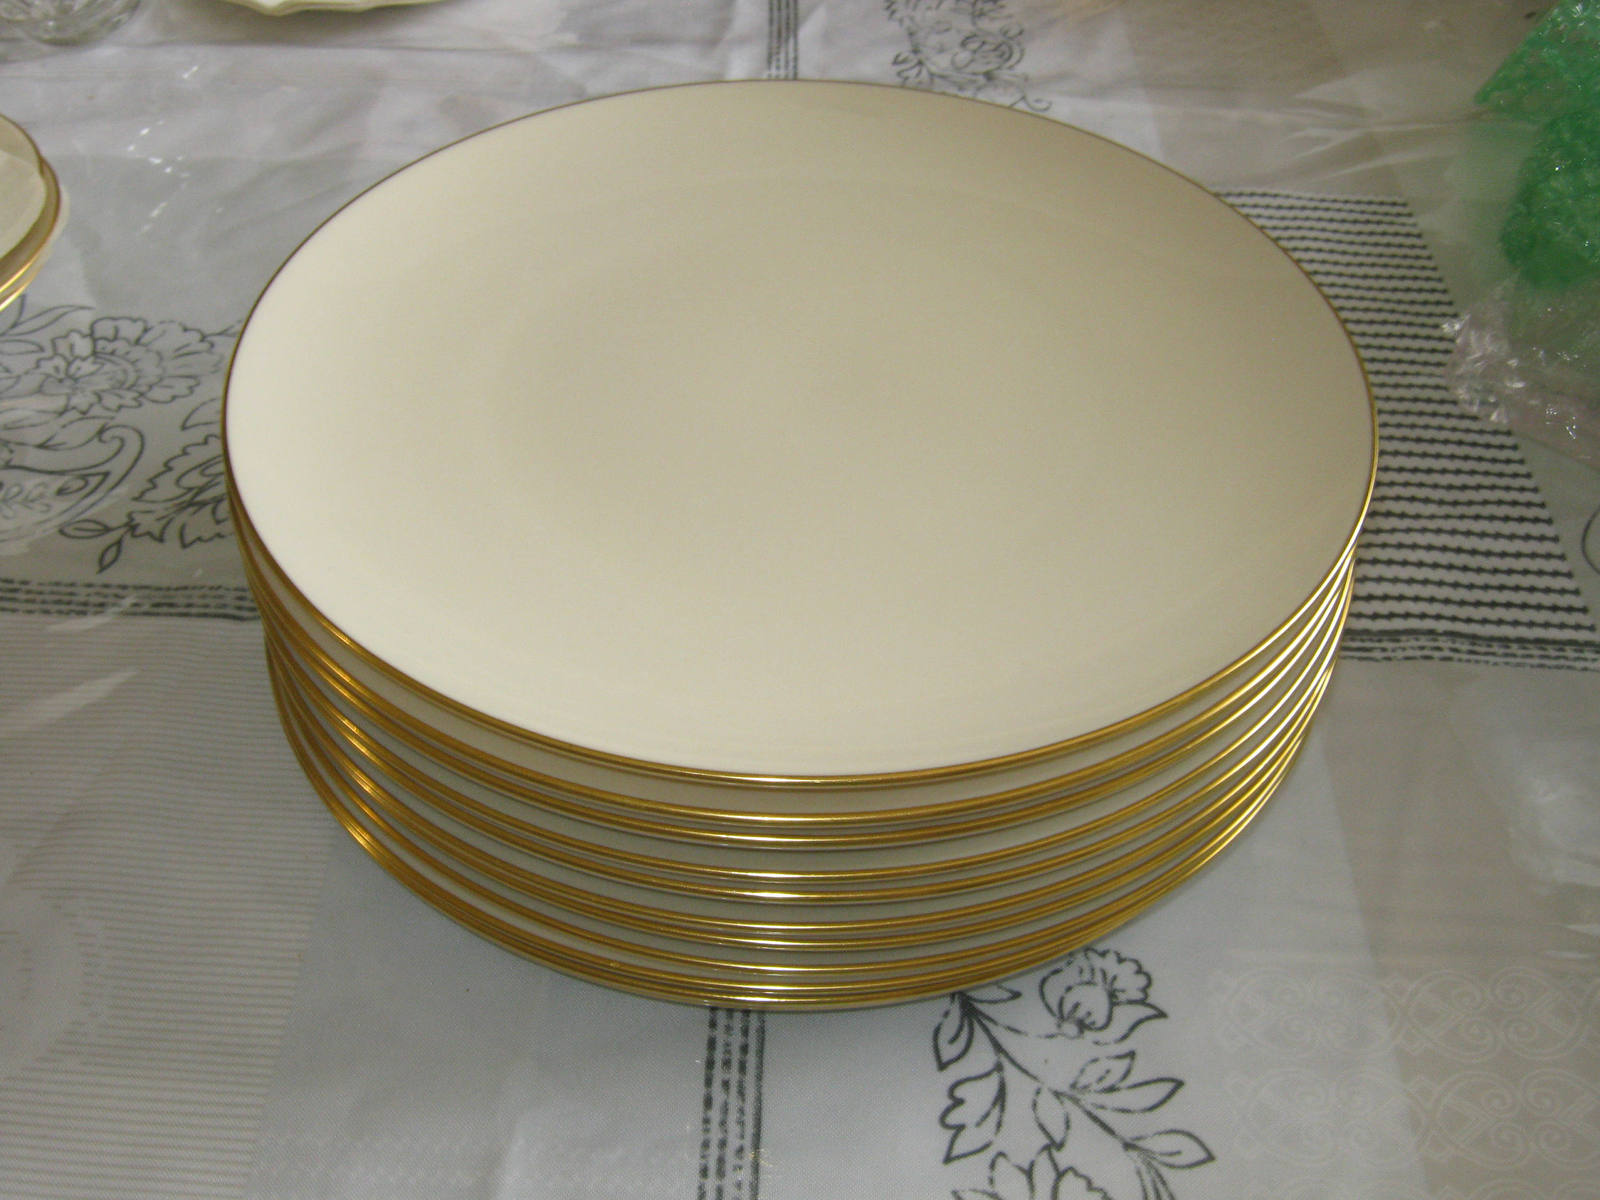 Lenox Olympia Gold X303 17 - 10 3/8  Dinner Plates Made in USA & Lenox Olympia Gold X303 17 - 10 3/8